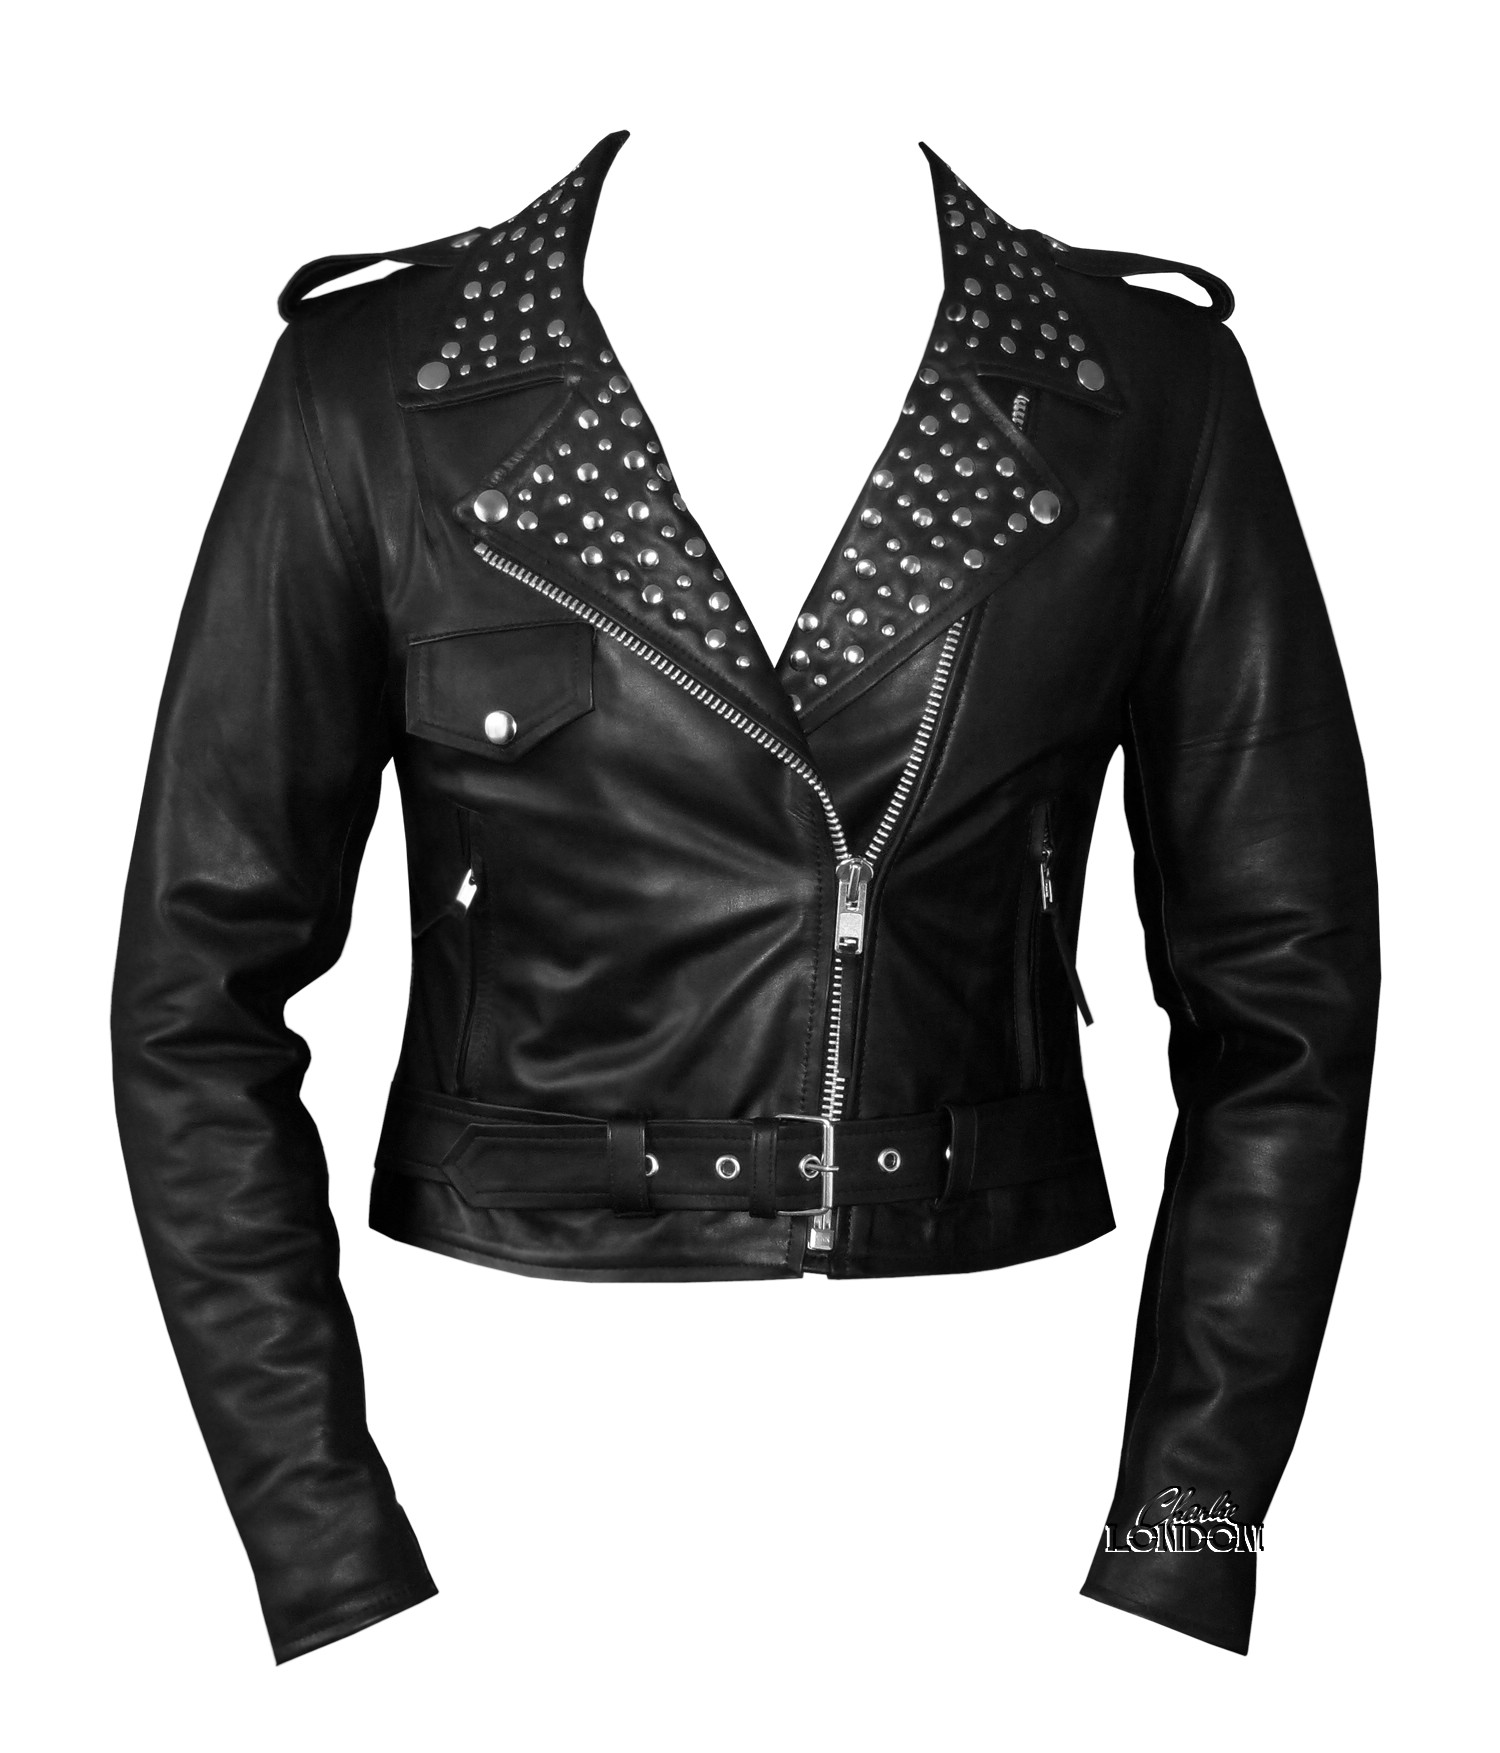 Women's Fashion Leather Jacket | Charlie London - Leather Jackets ...